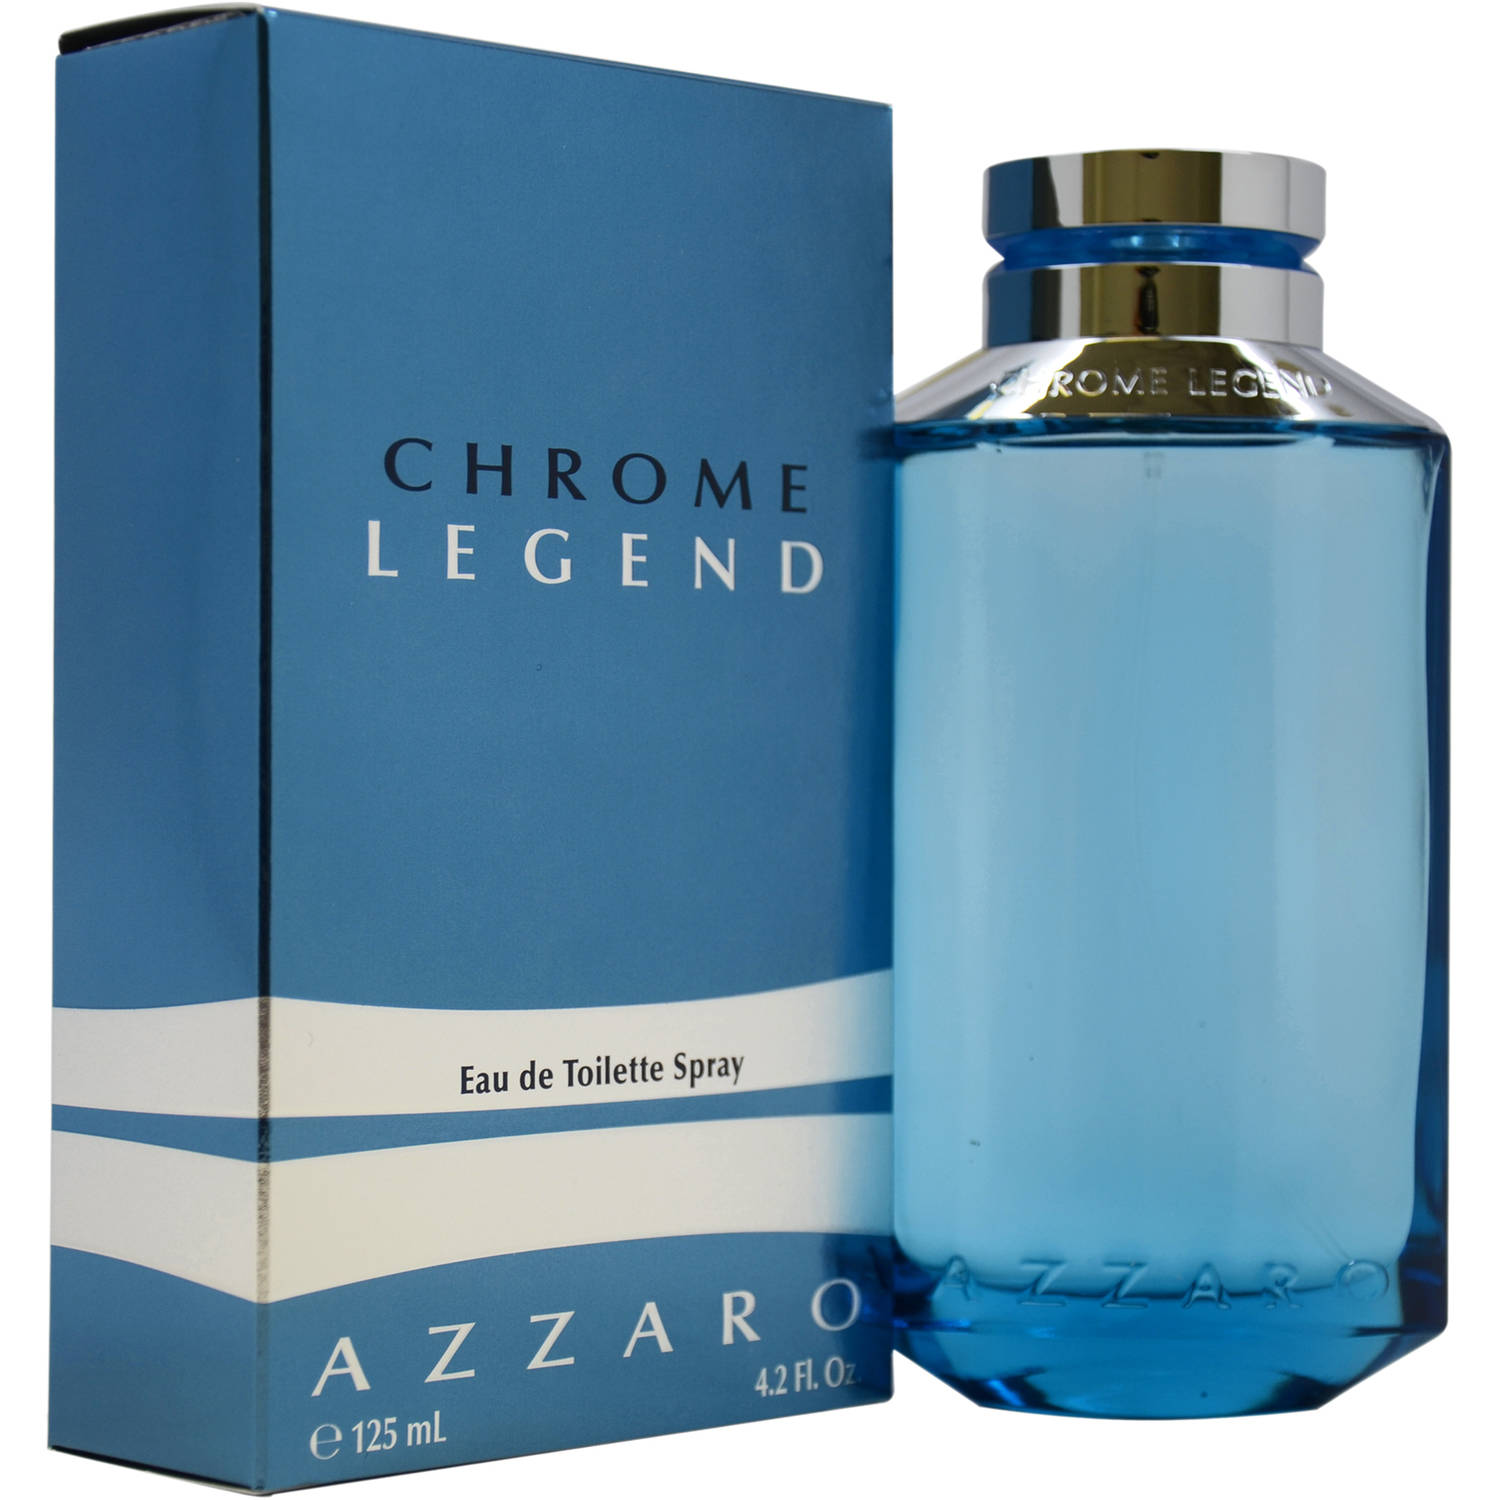 Azzaro Chrome Legend for Men Eau de Toilette Spray, 4.2 fl oz